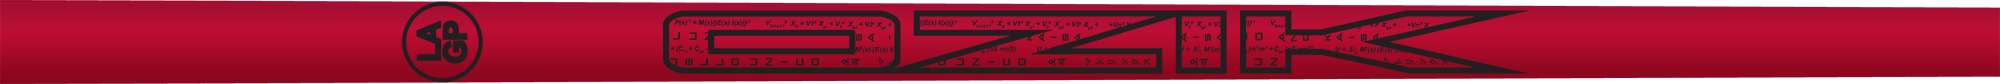 Ozik White Tie: Candy Apple Red Black Satin - Wood 60 X